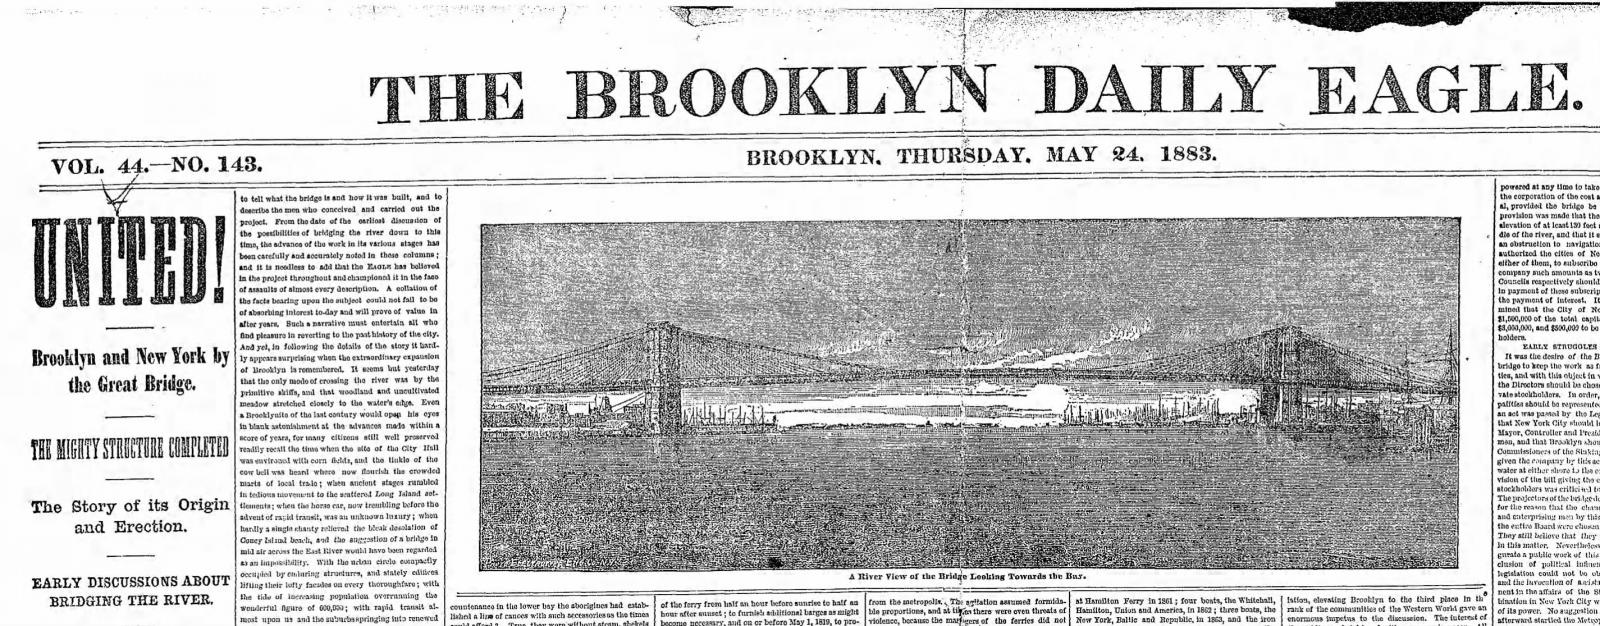 front page of the Brooklyn Eagle on opening day of the Brooklyn Bridge, 1883